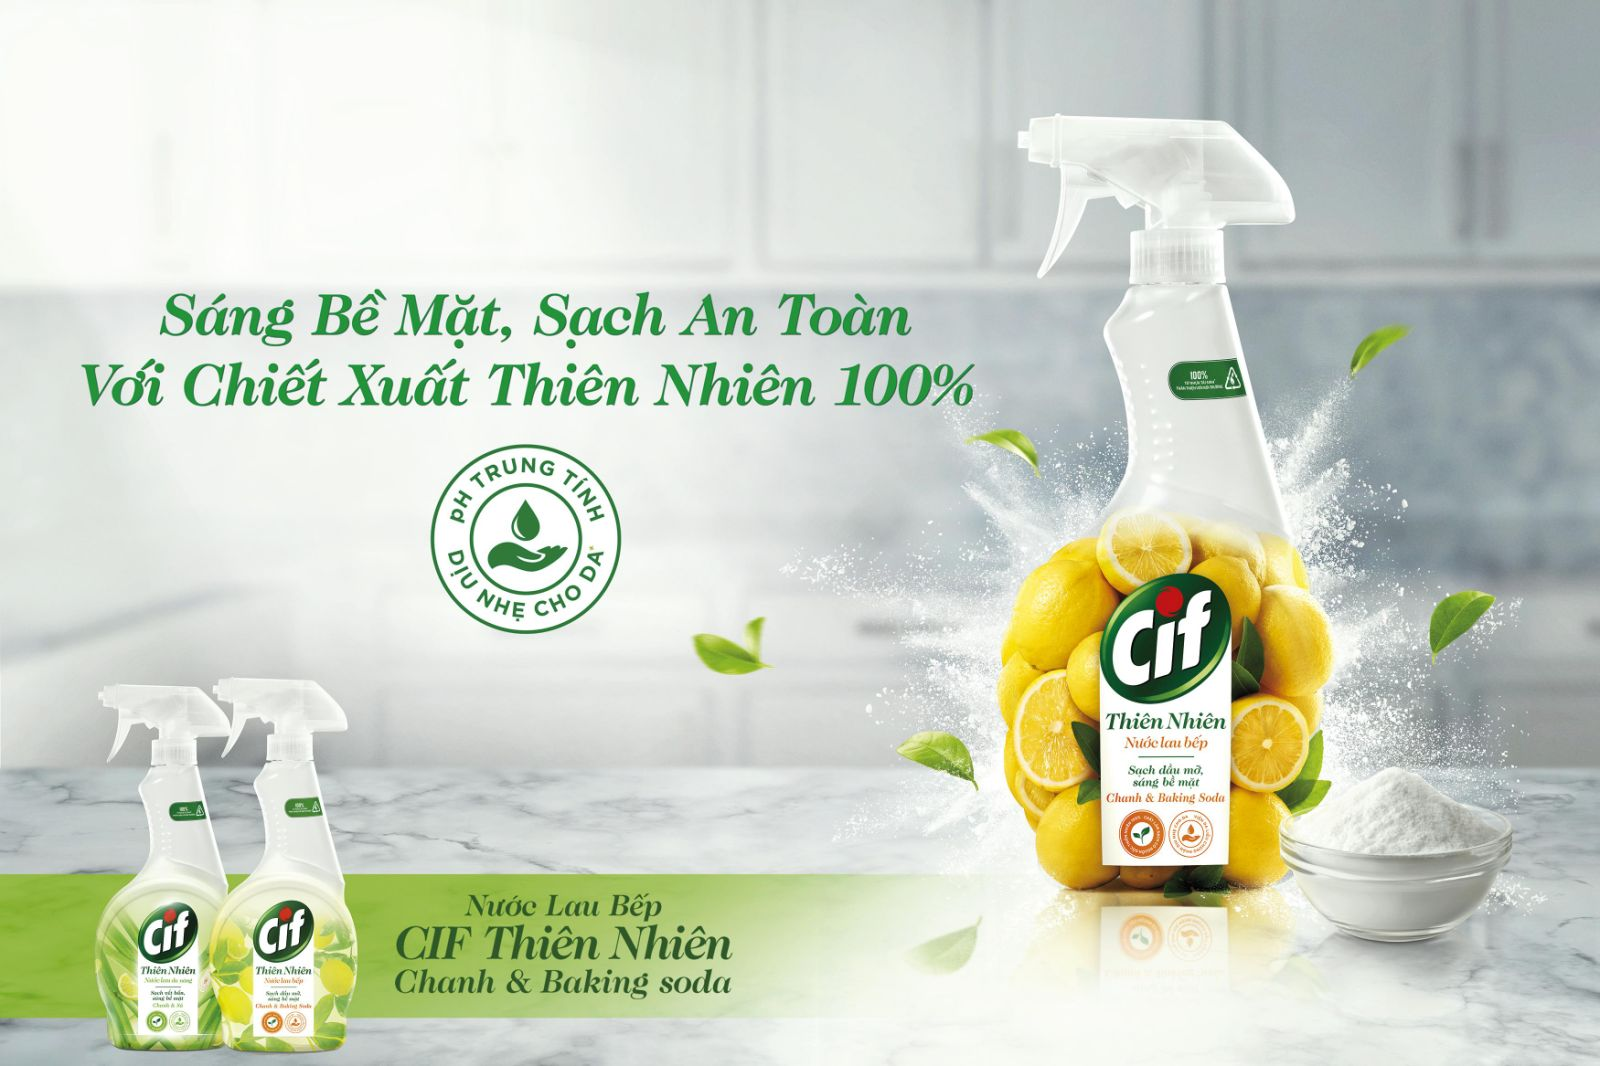 Launch comms for naturals range of Cif household surface cleaner